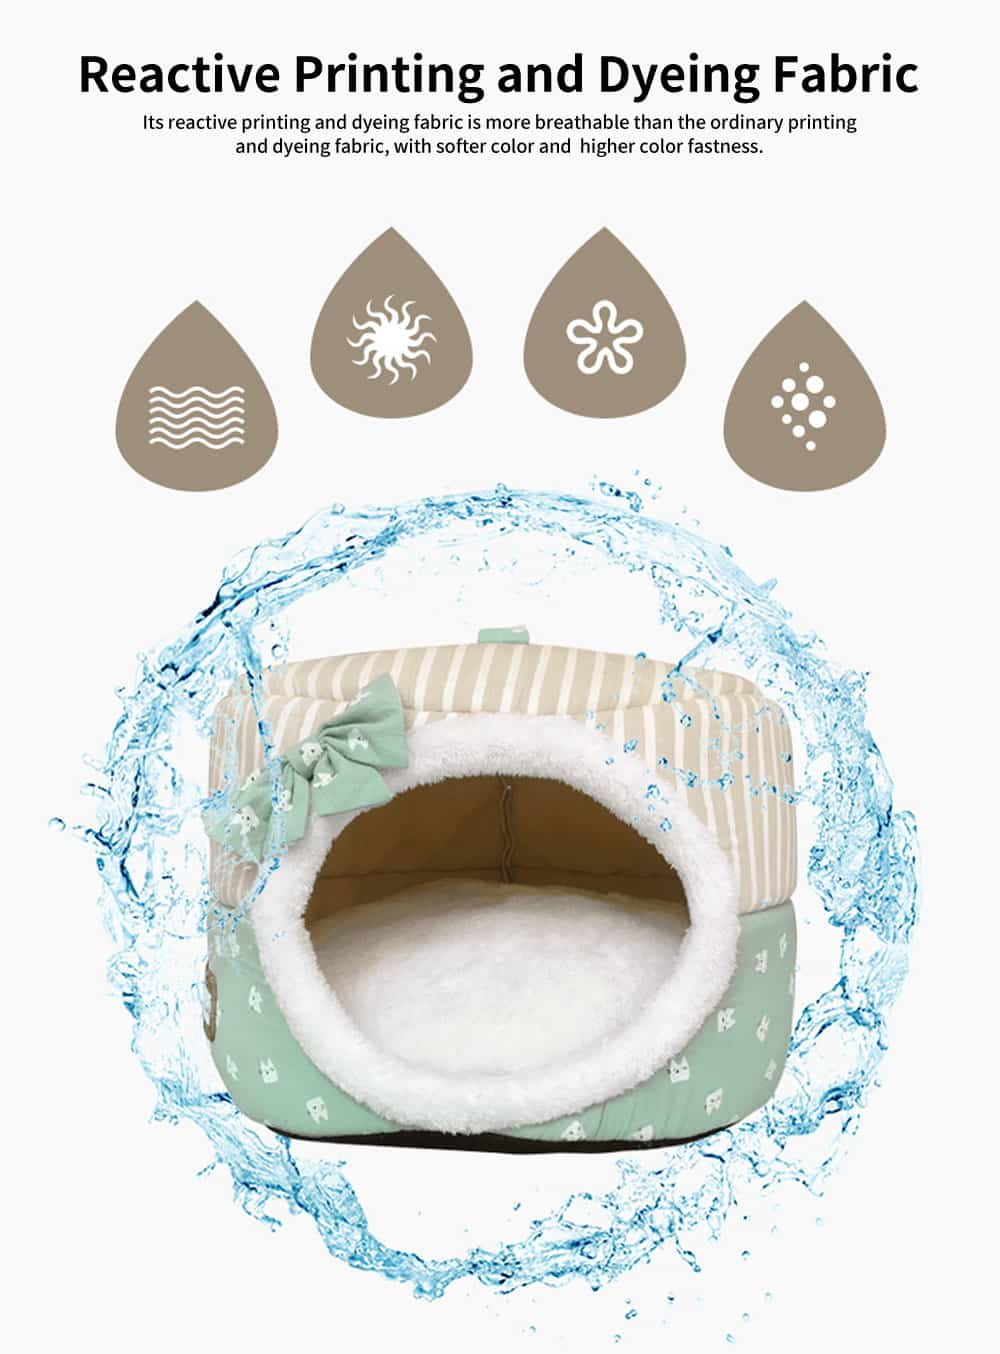 Round Shell Nest Pet Bed with Double-sided Cushion, Reactive Printing and Dyeing Fabric Cat Litter 1